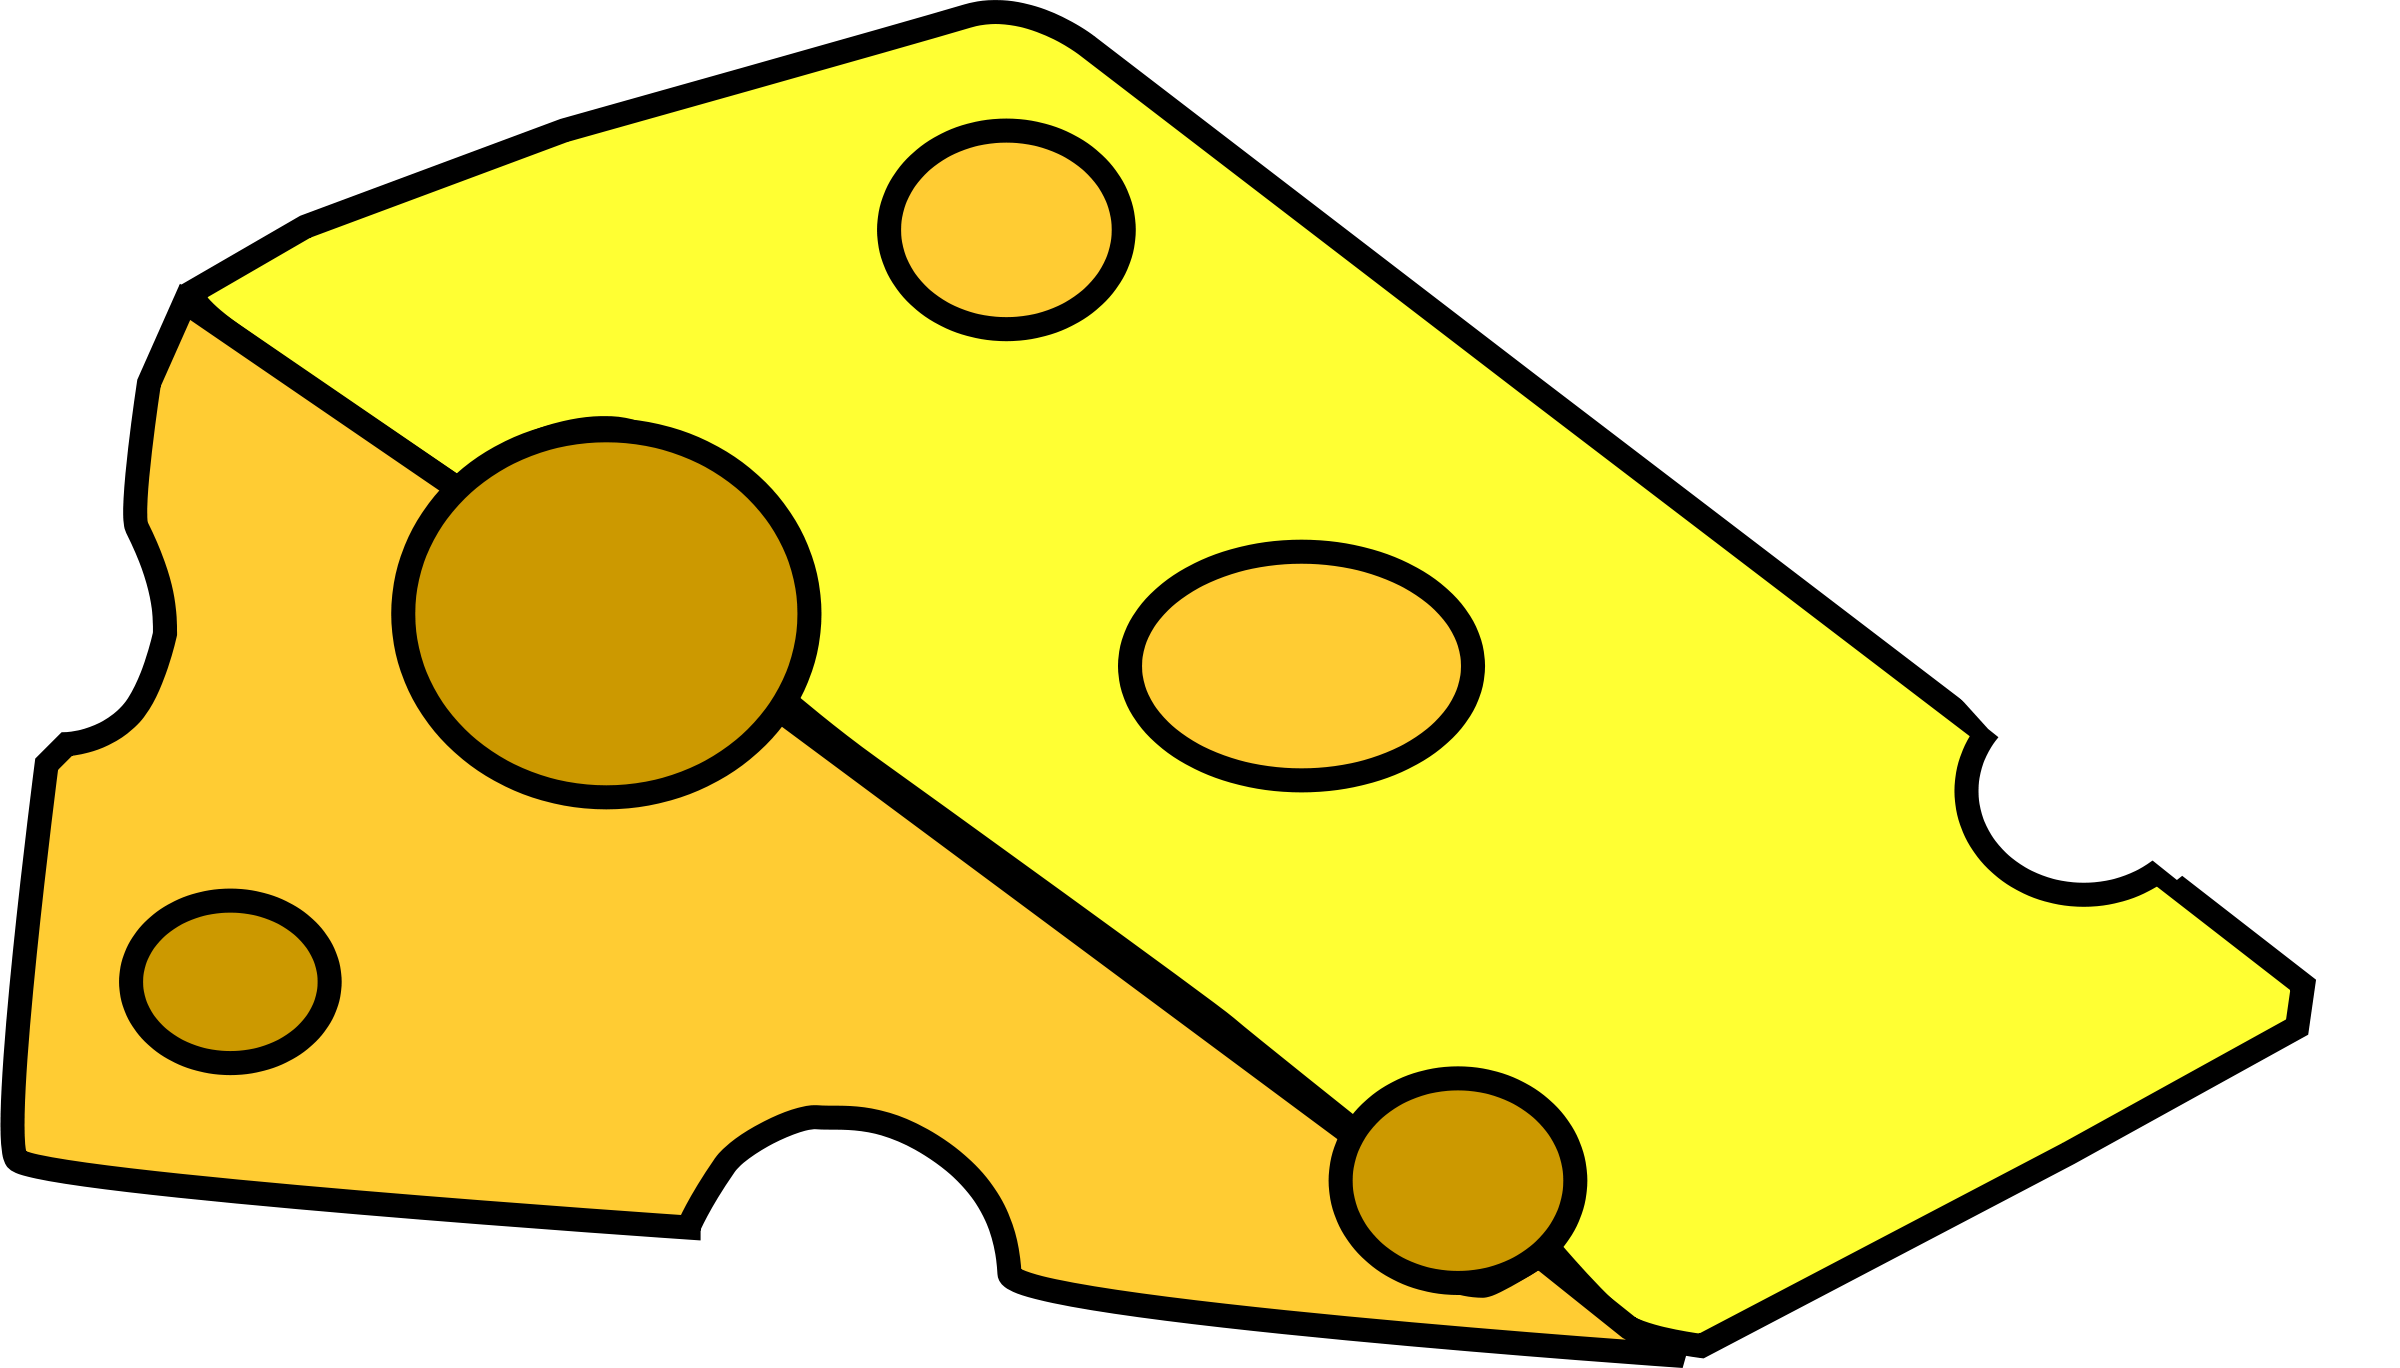 Square clipart cheese. Mouse free images image